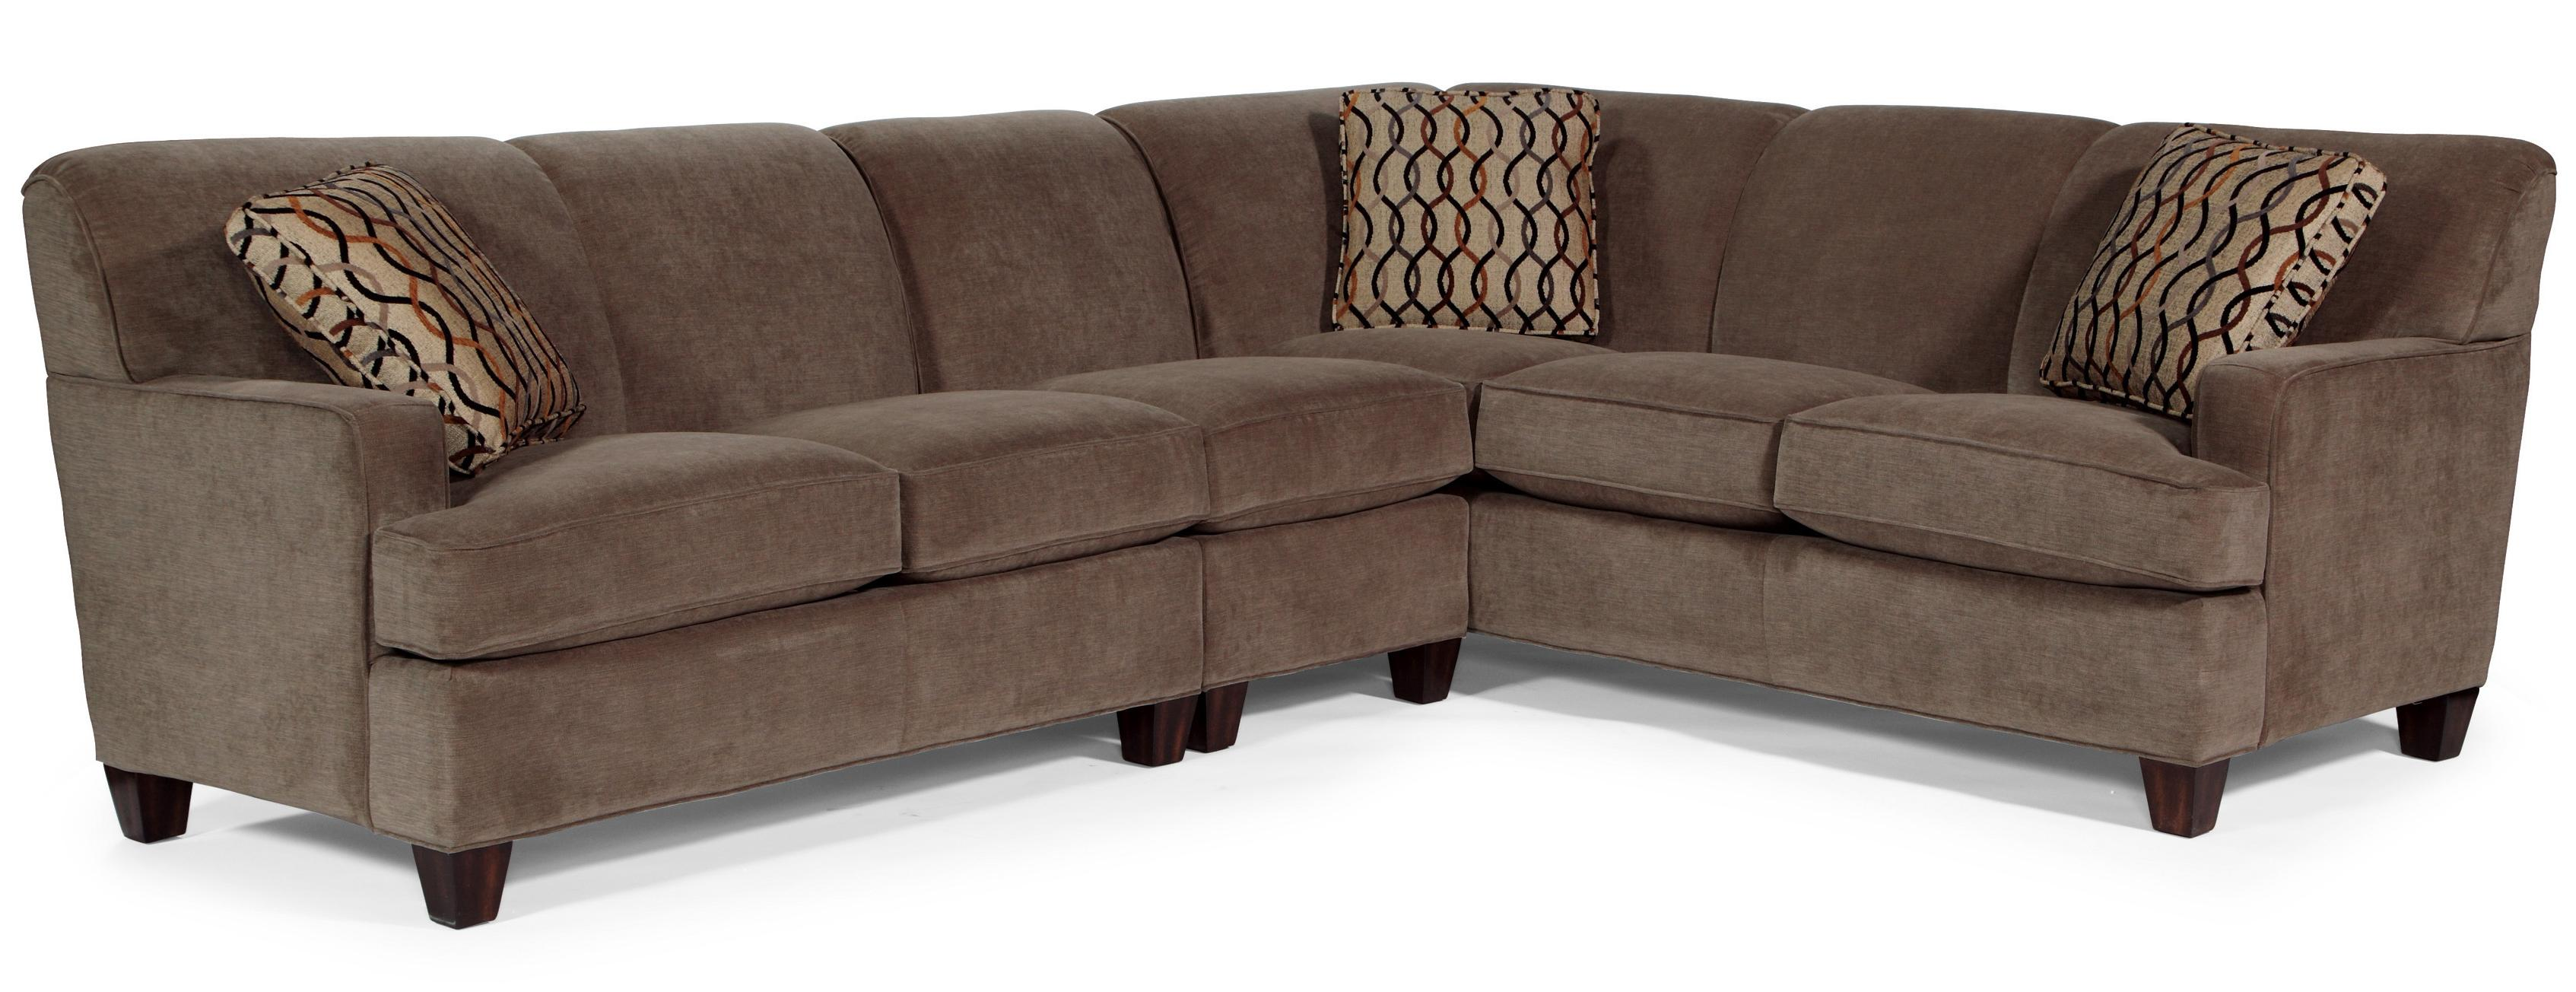 Dempsey 3 pc. Sectional Sofa by Flexsteel at Steger's Furniture